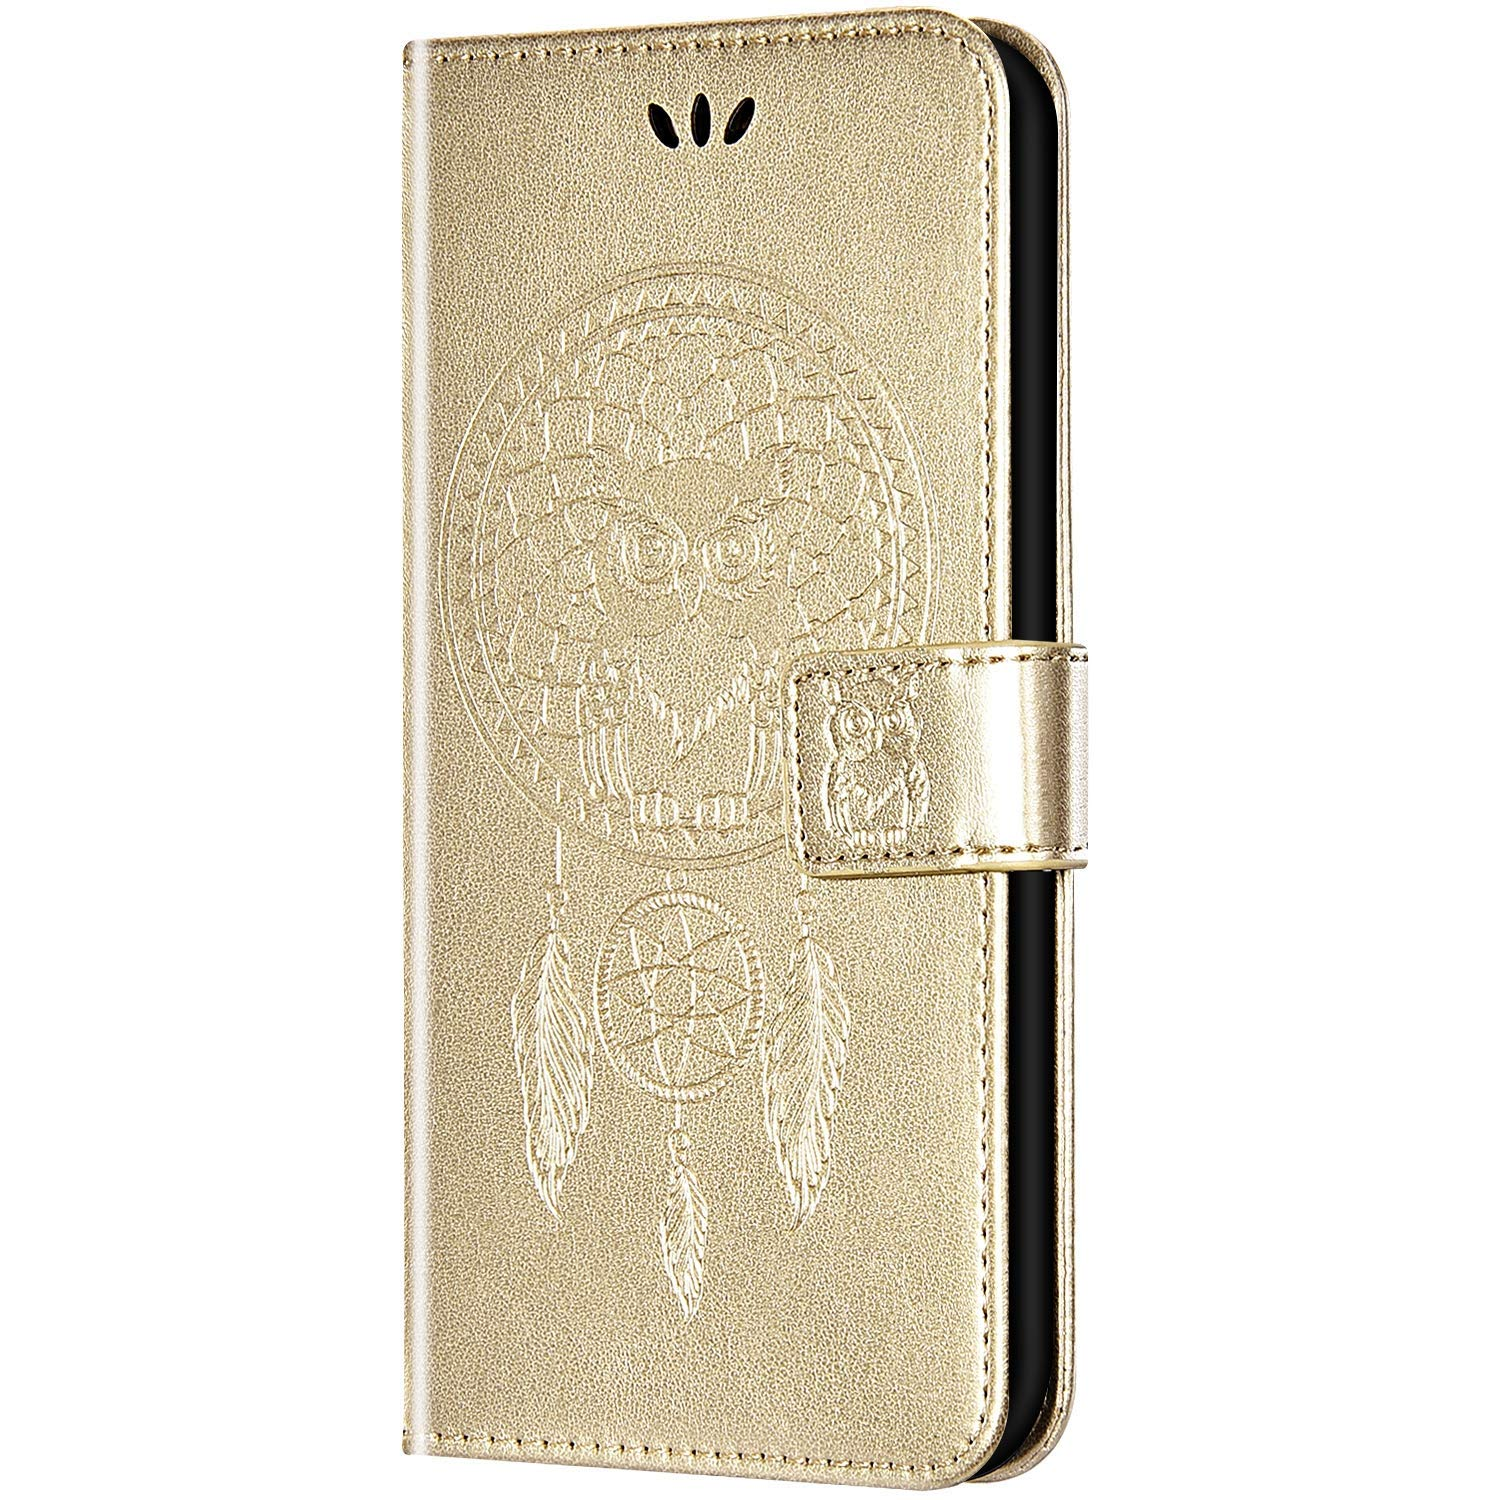 Case for Galaxy S10e Flip Case Ultra Slim PU Leather Wallet with Card Holder/Slot and Magnetic Closure Shockproof Cartoon Animal Owl Embossed Protective Cover for Galaxy S10e,Gold by ikasus